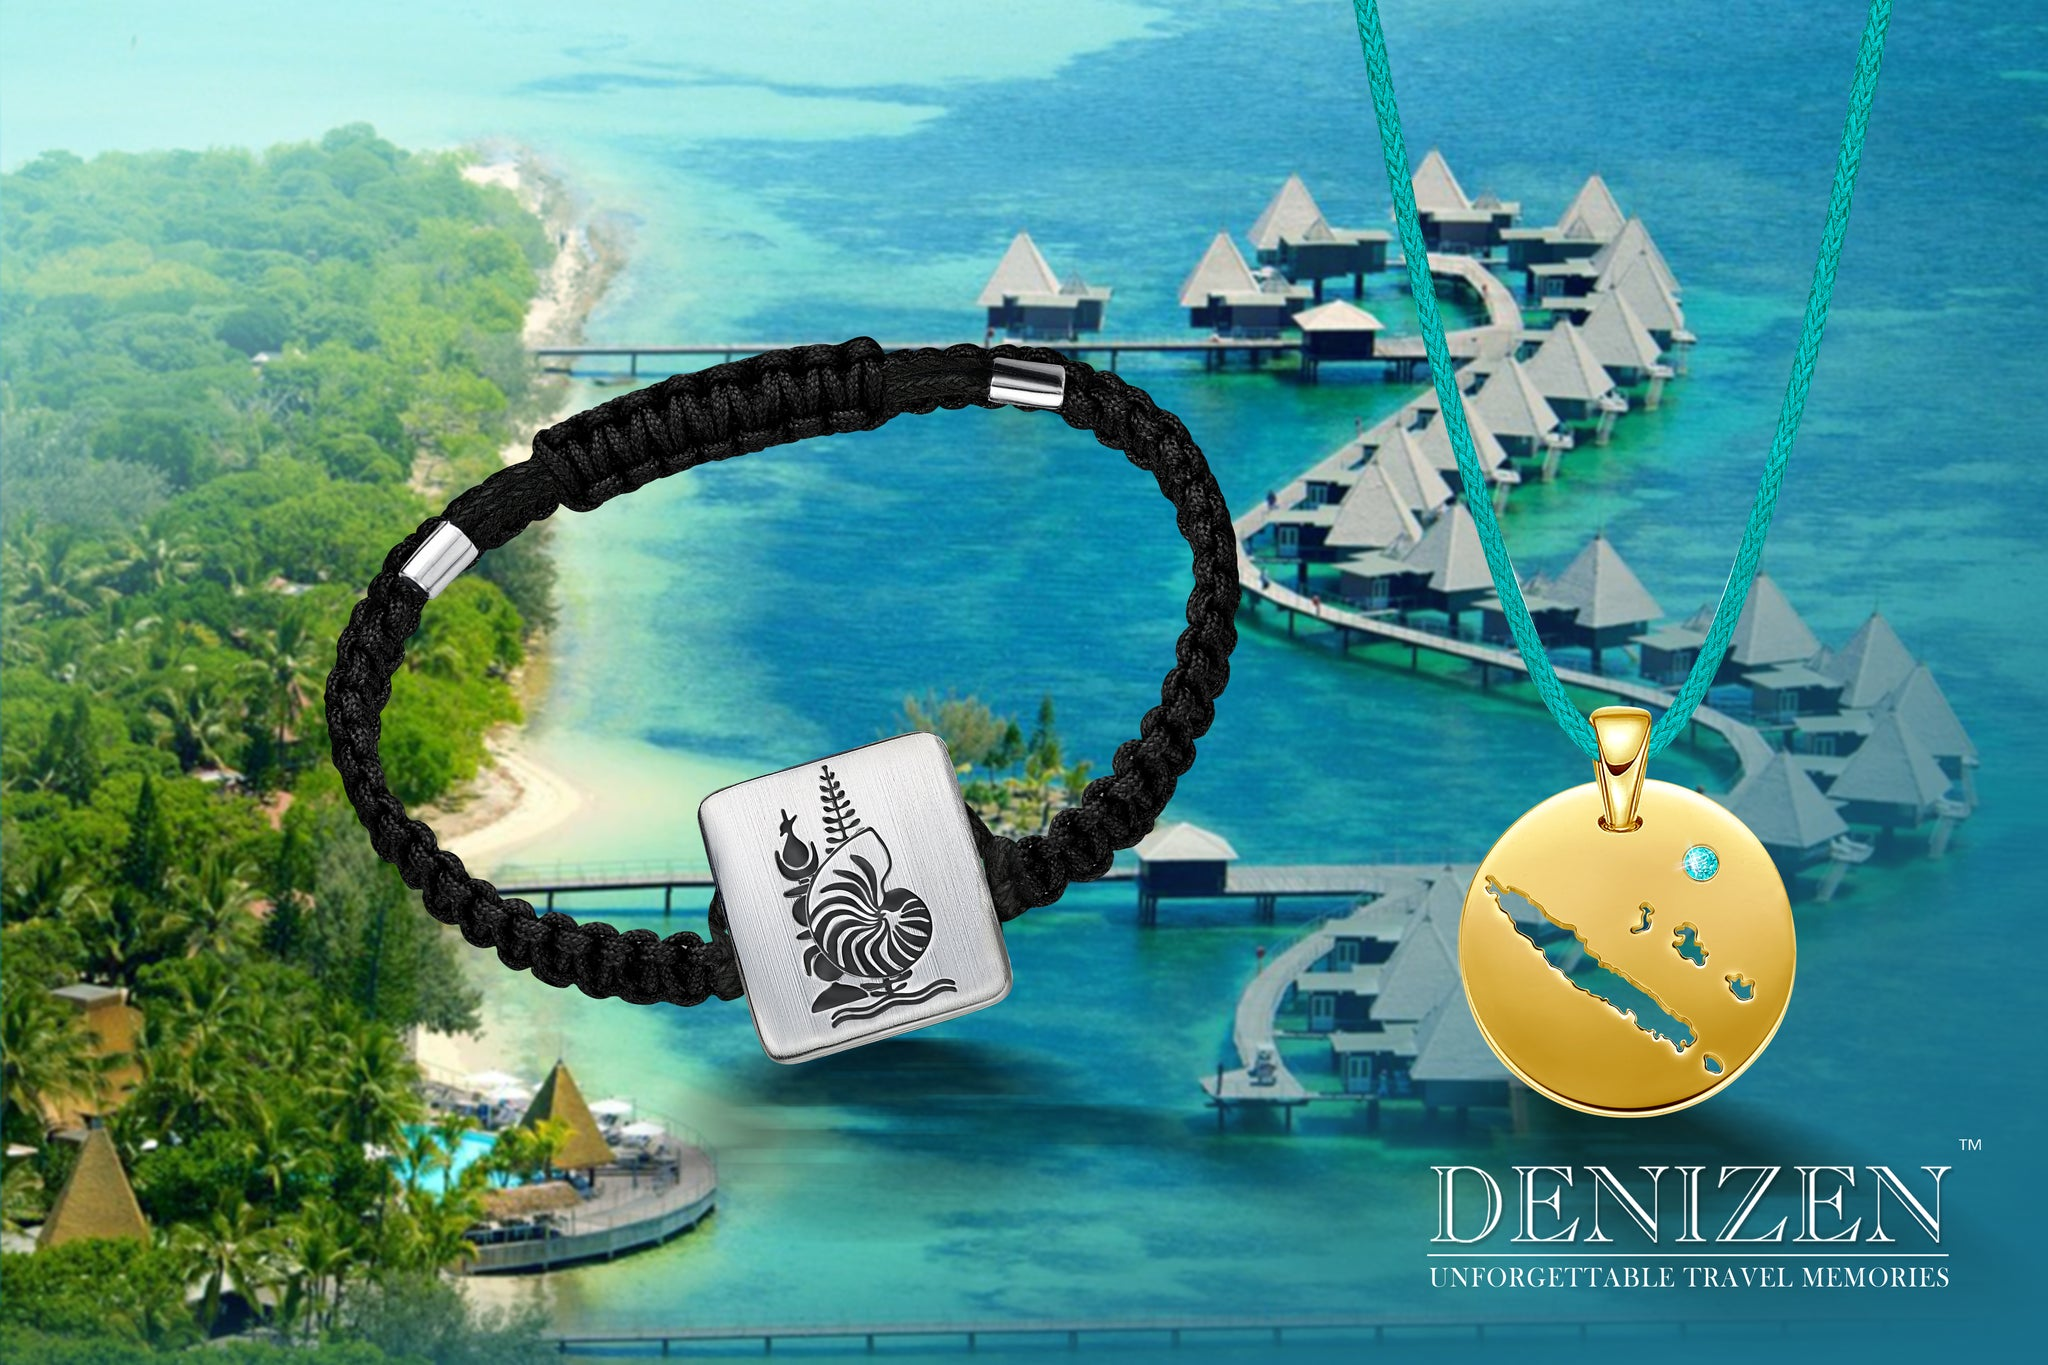 denizen bracelet and necklace of new caledonia, nouvelle caledonie